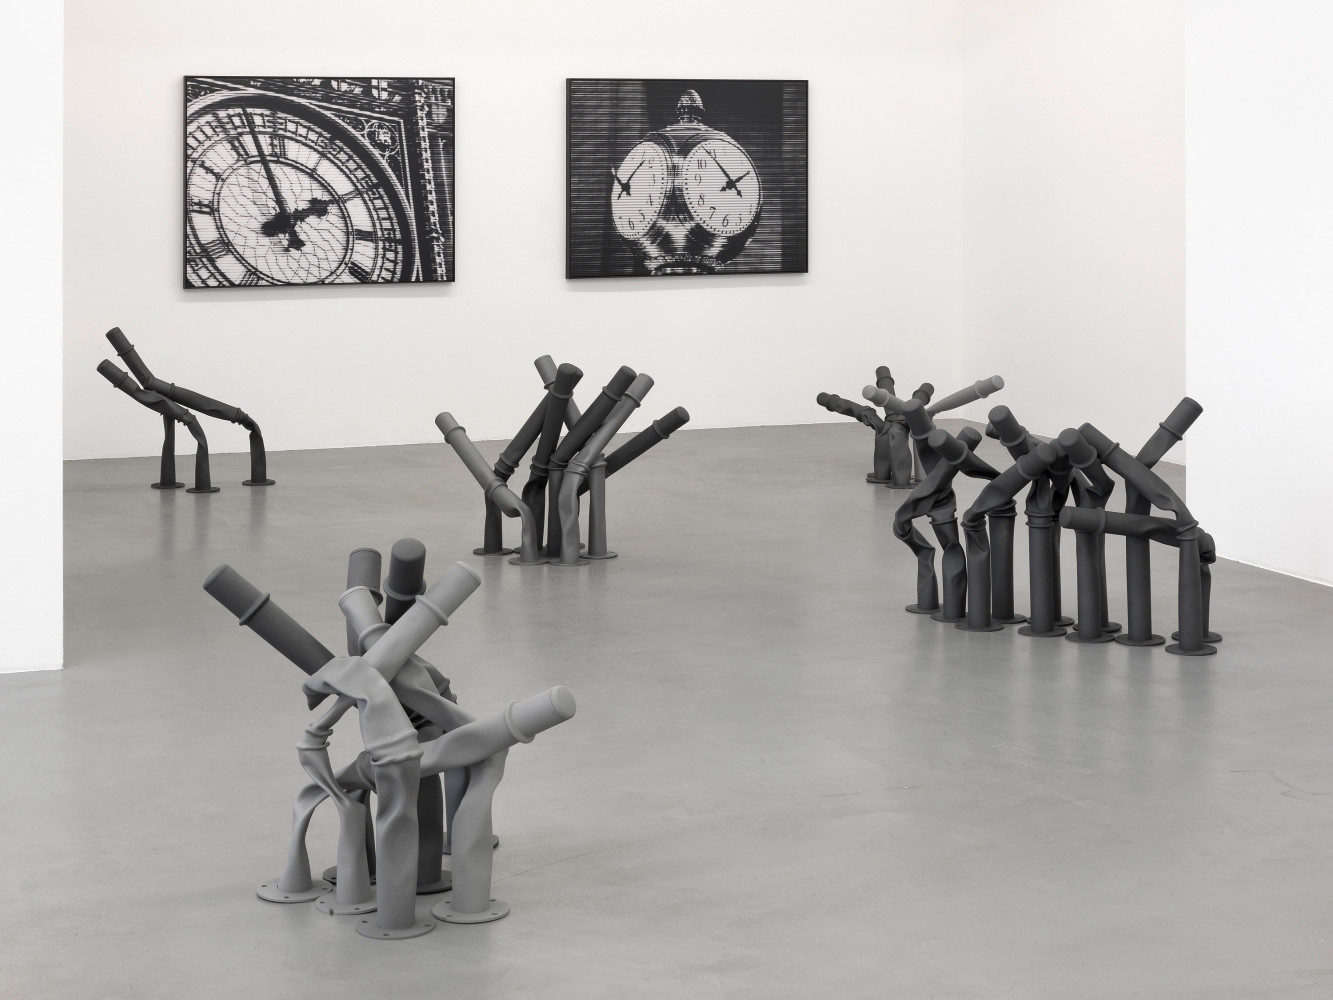 Bettina Pousttchi, 'Off the Clock', Installation view, 2013